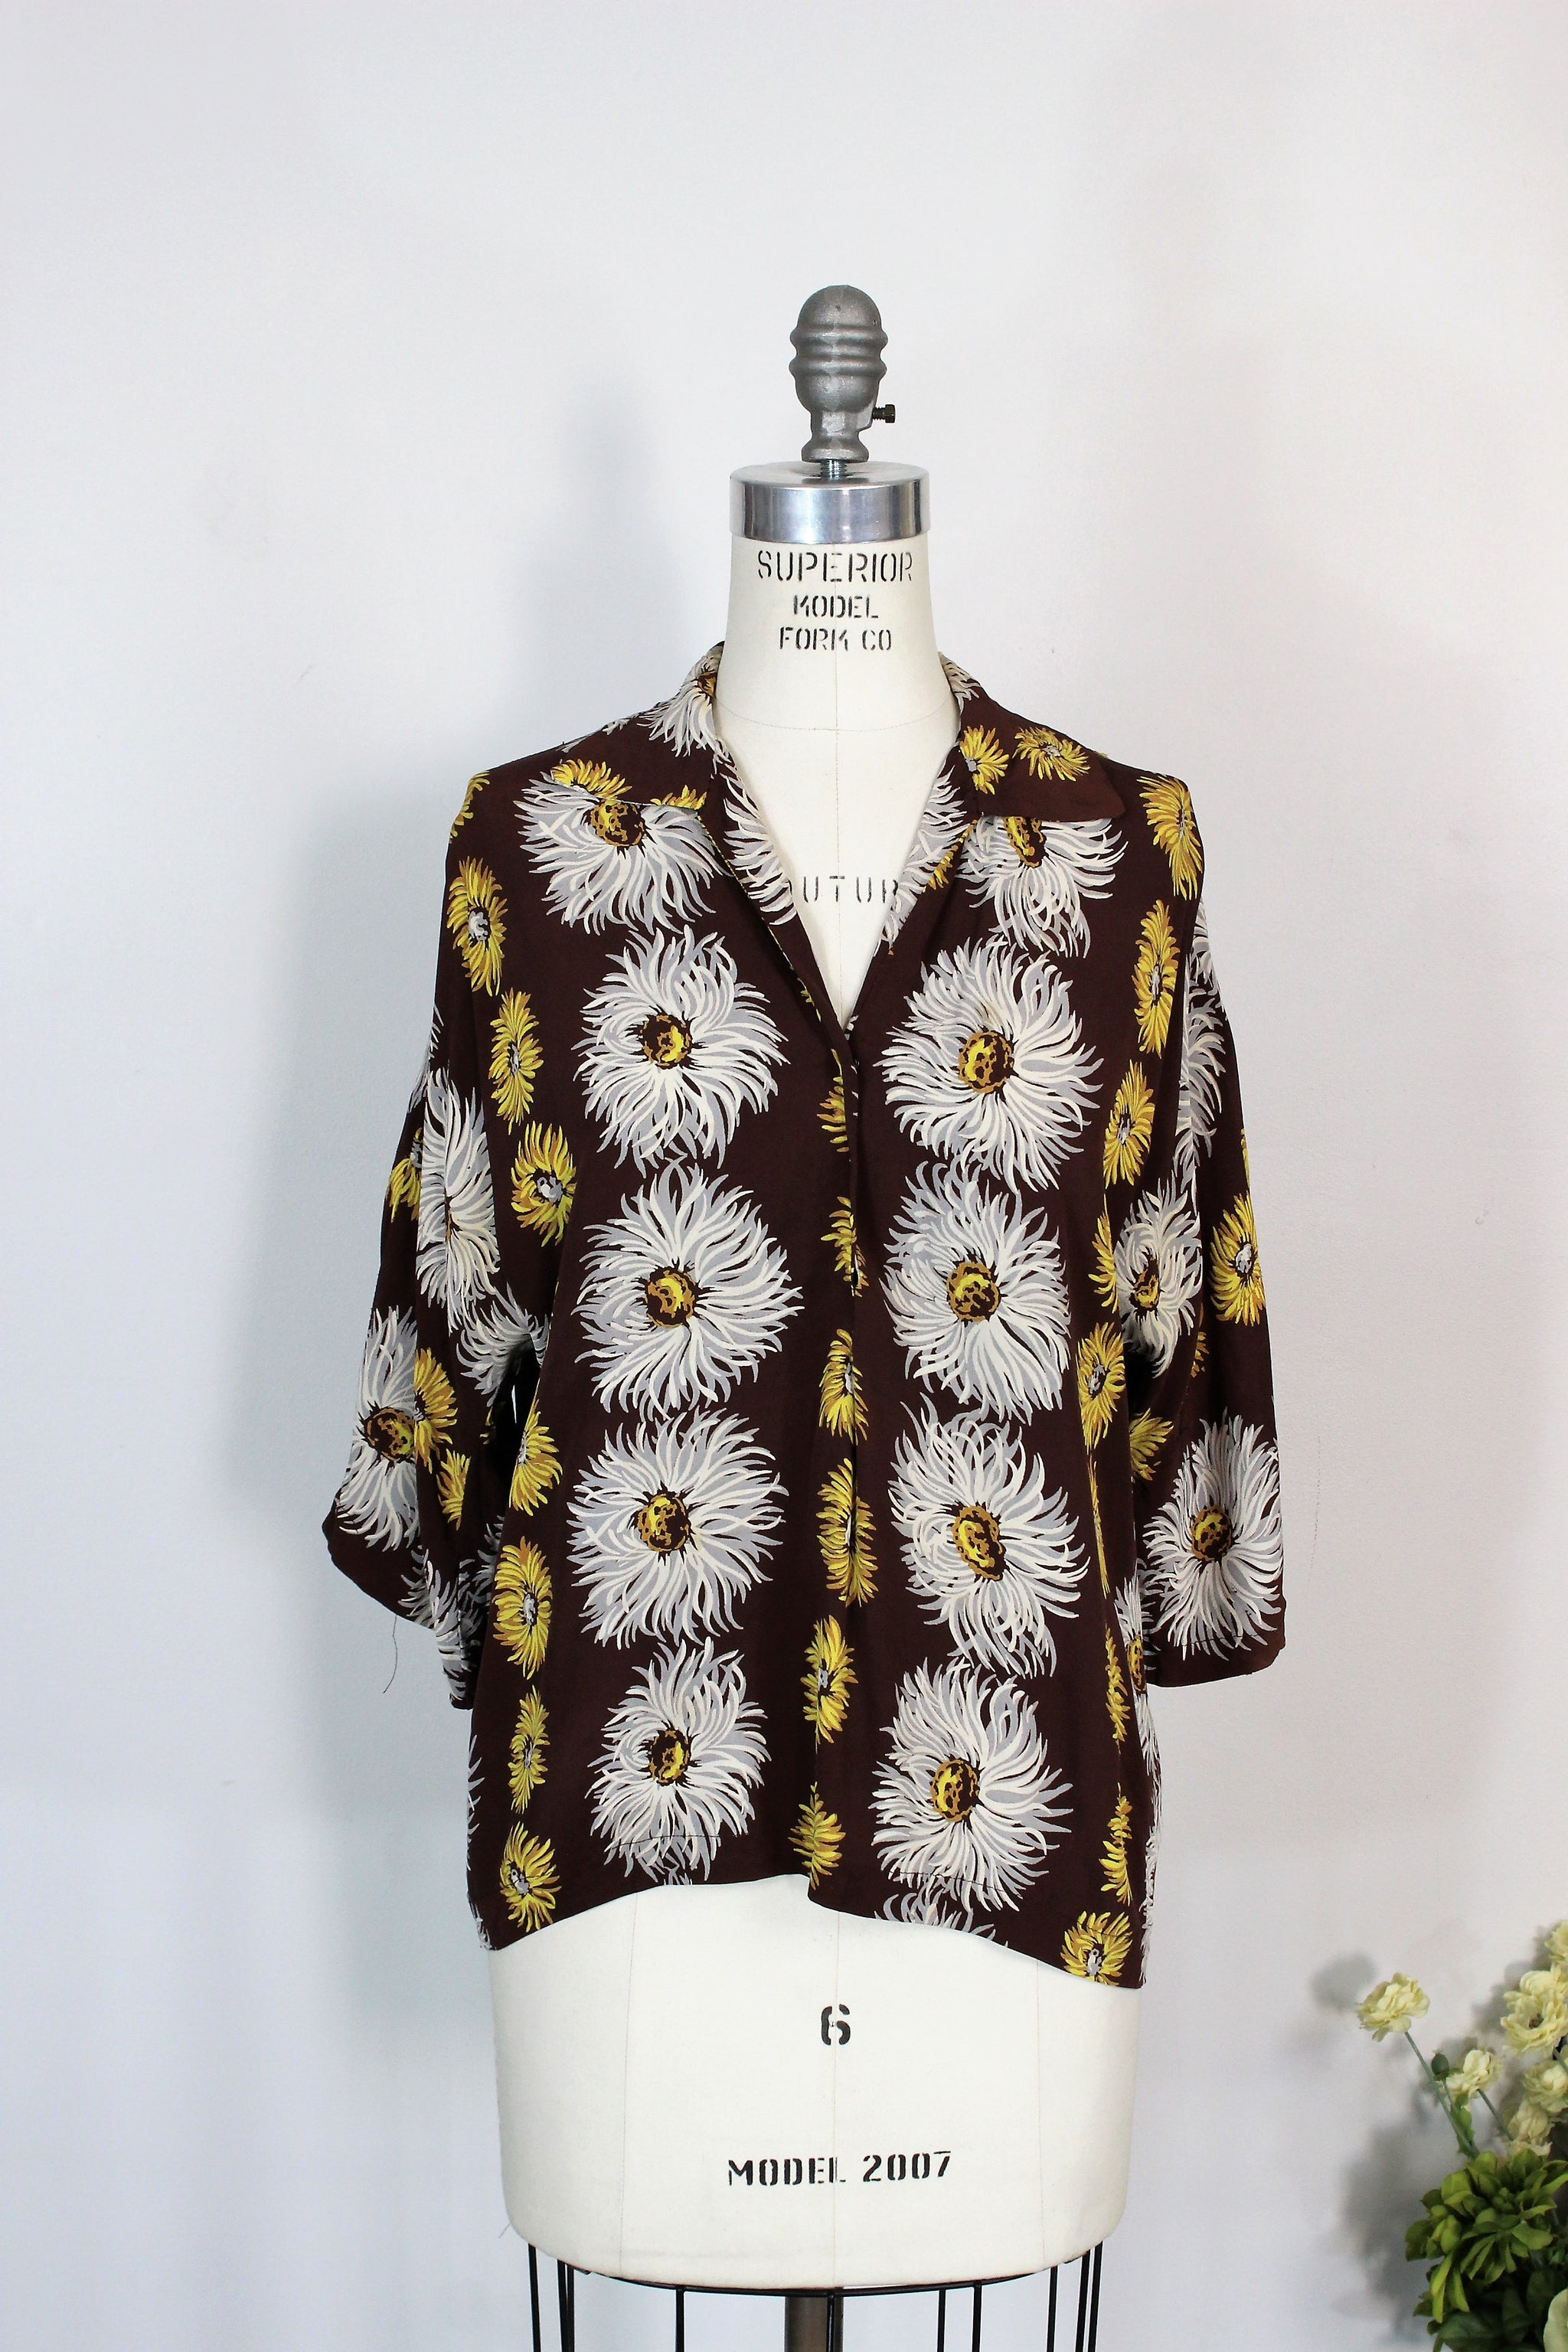 e0621c74dcddb Vintage 1950s Blouse In Brown With White And Yellow Flowers - Toadstool  Farm Vintage